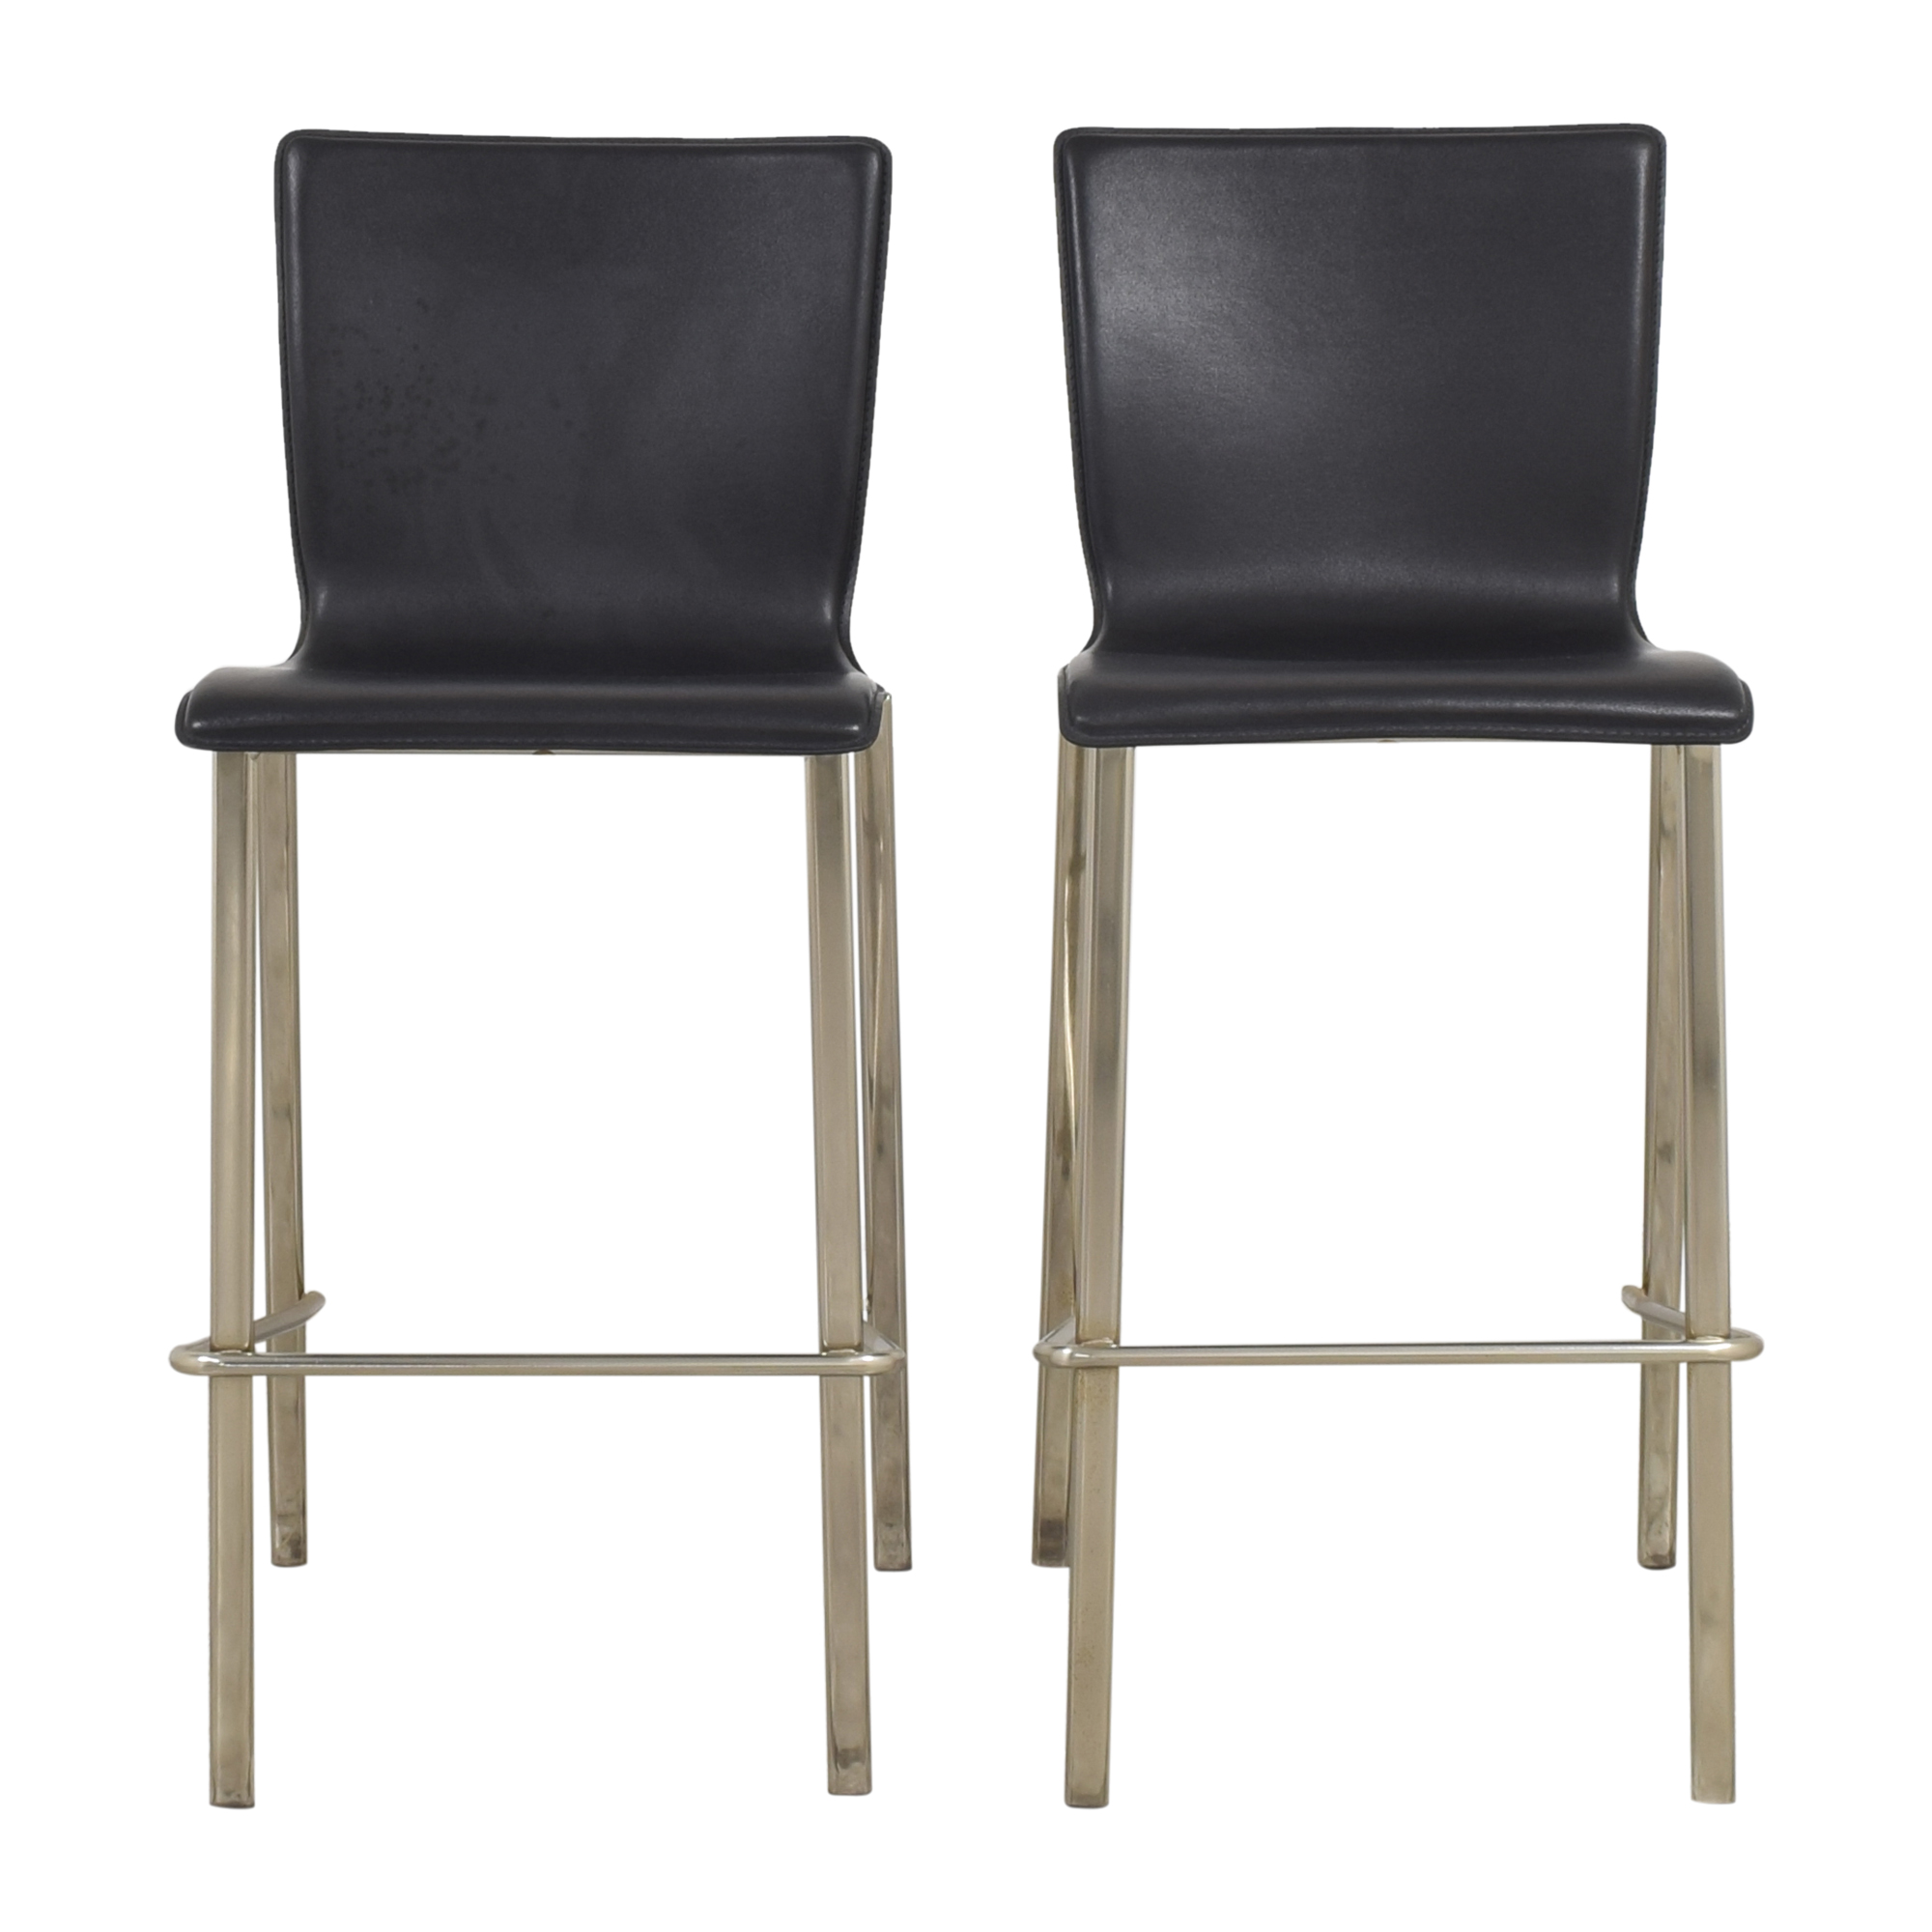 CB2 CB2 Modern Bar Stools price